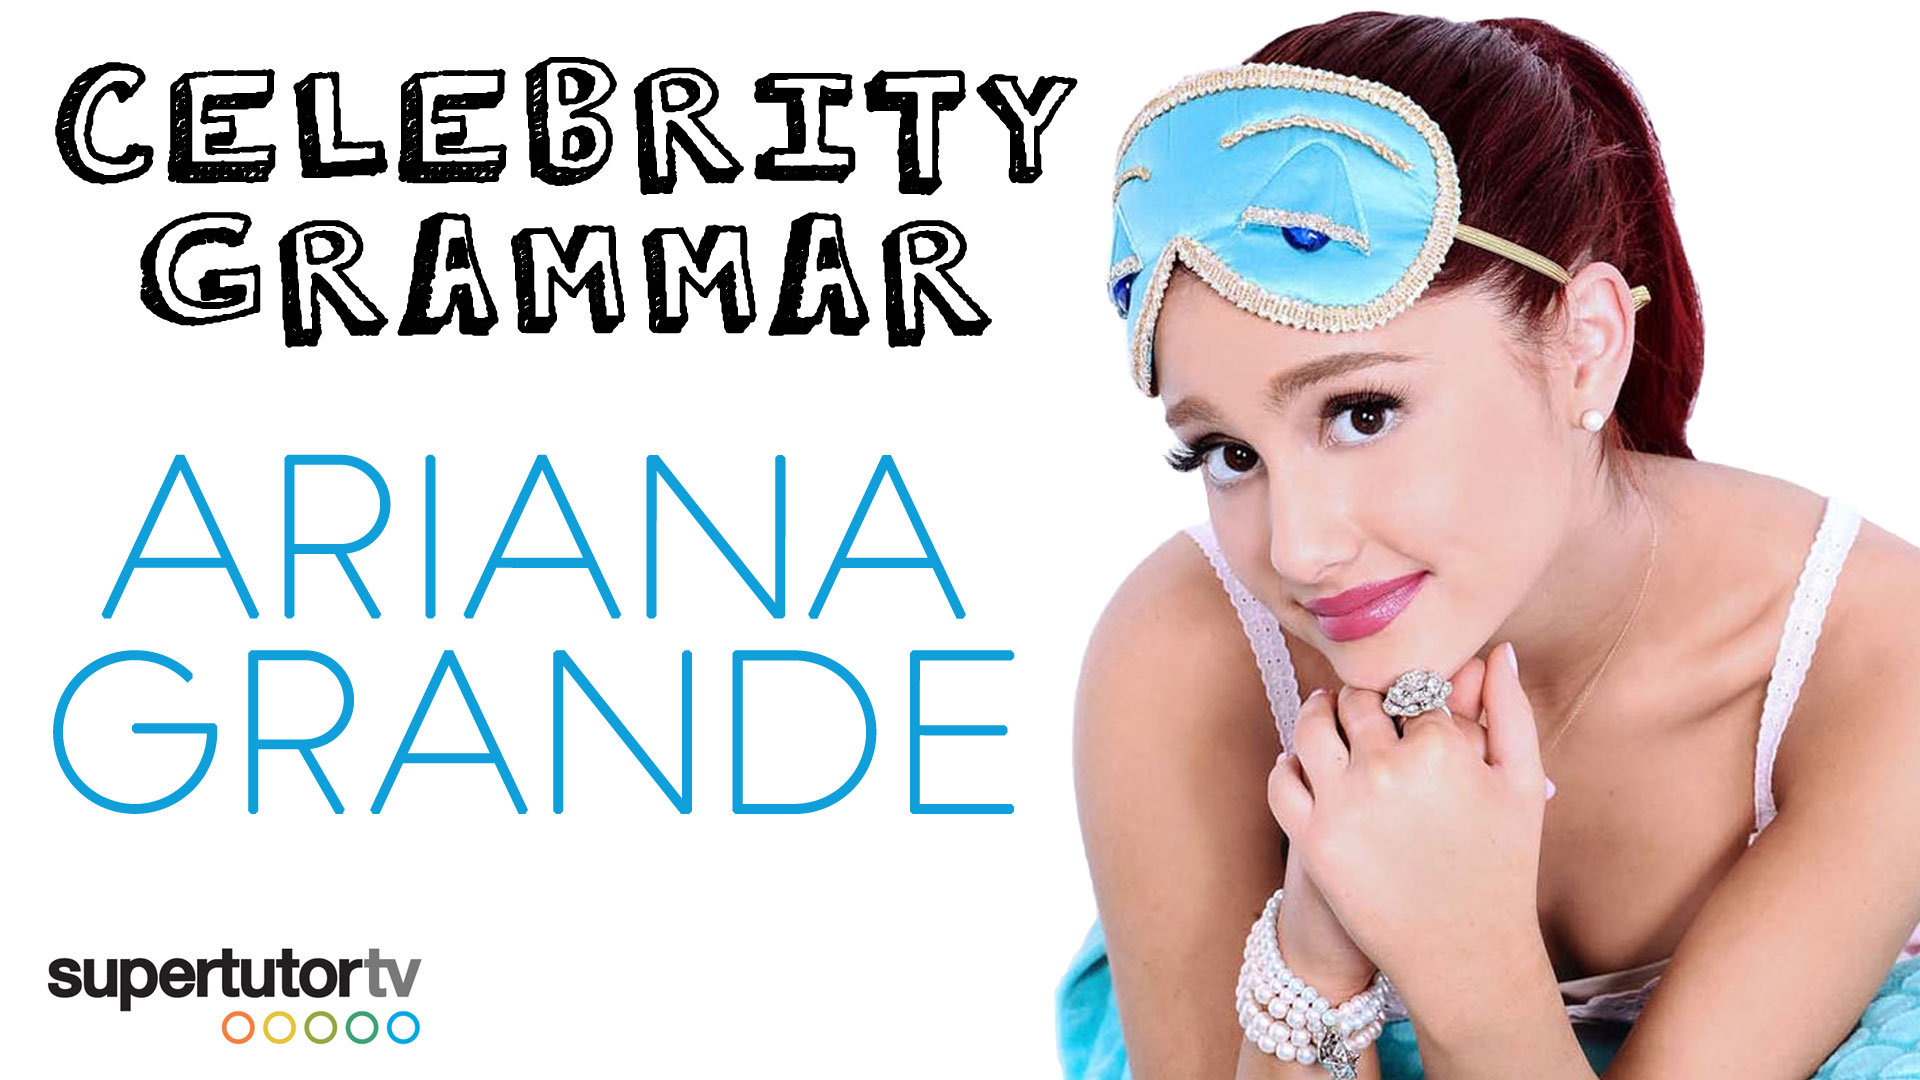 Pronoun Case Celebrity Grammar with Ariana Grande!